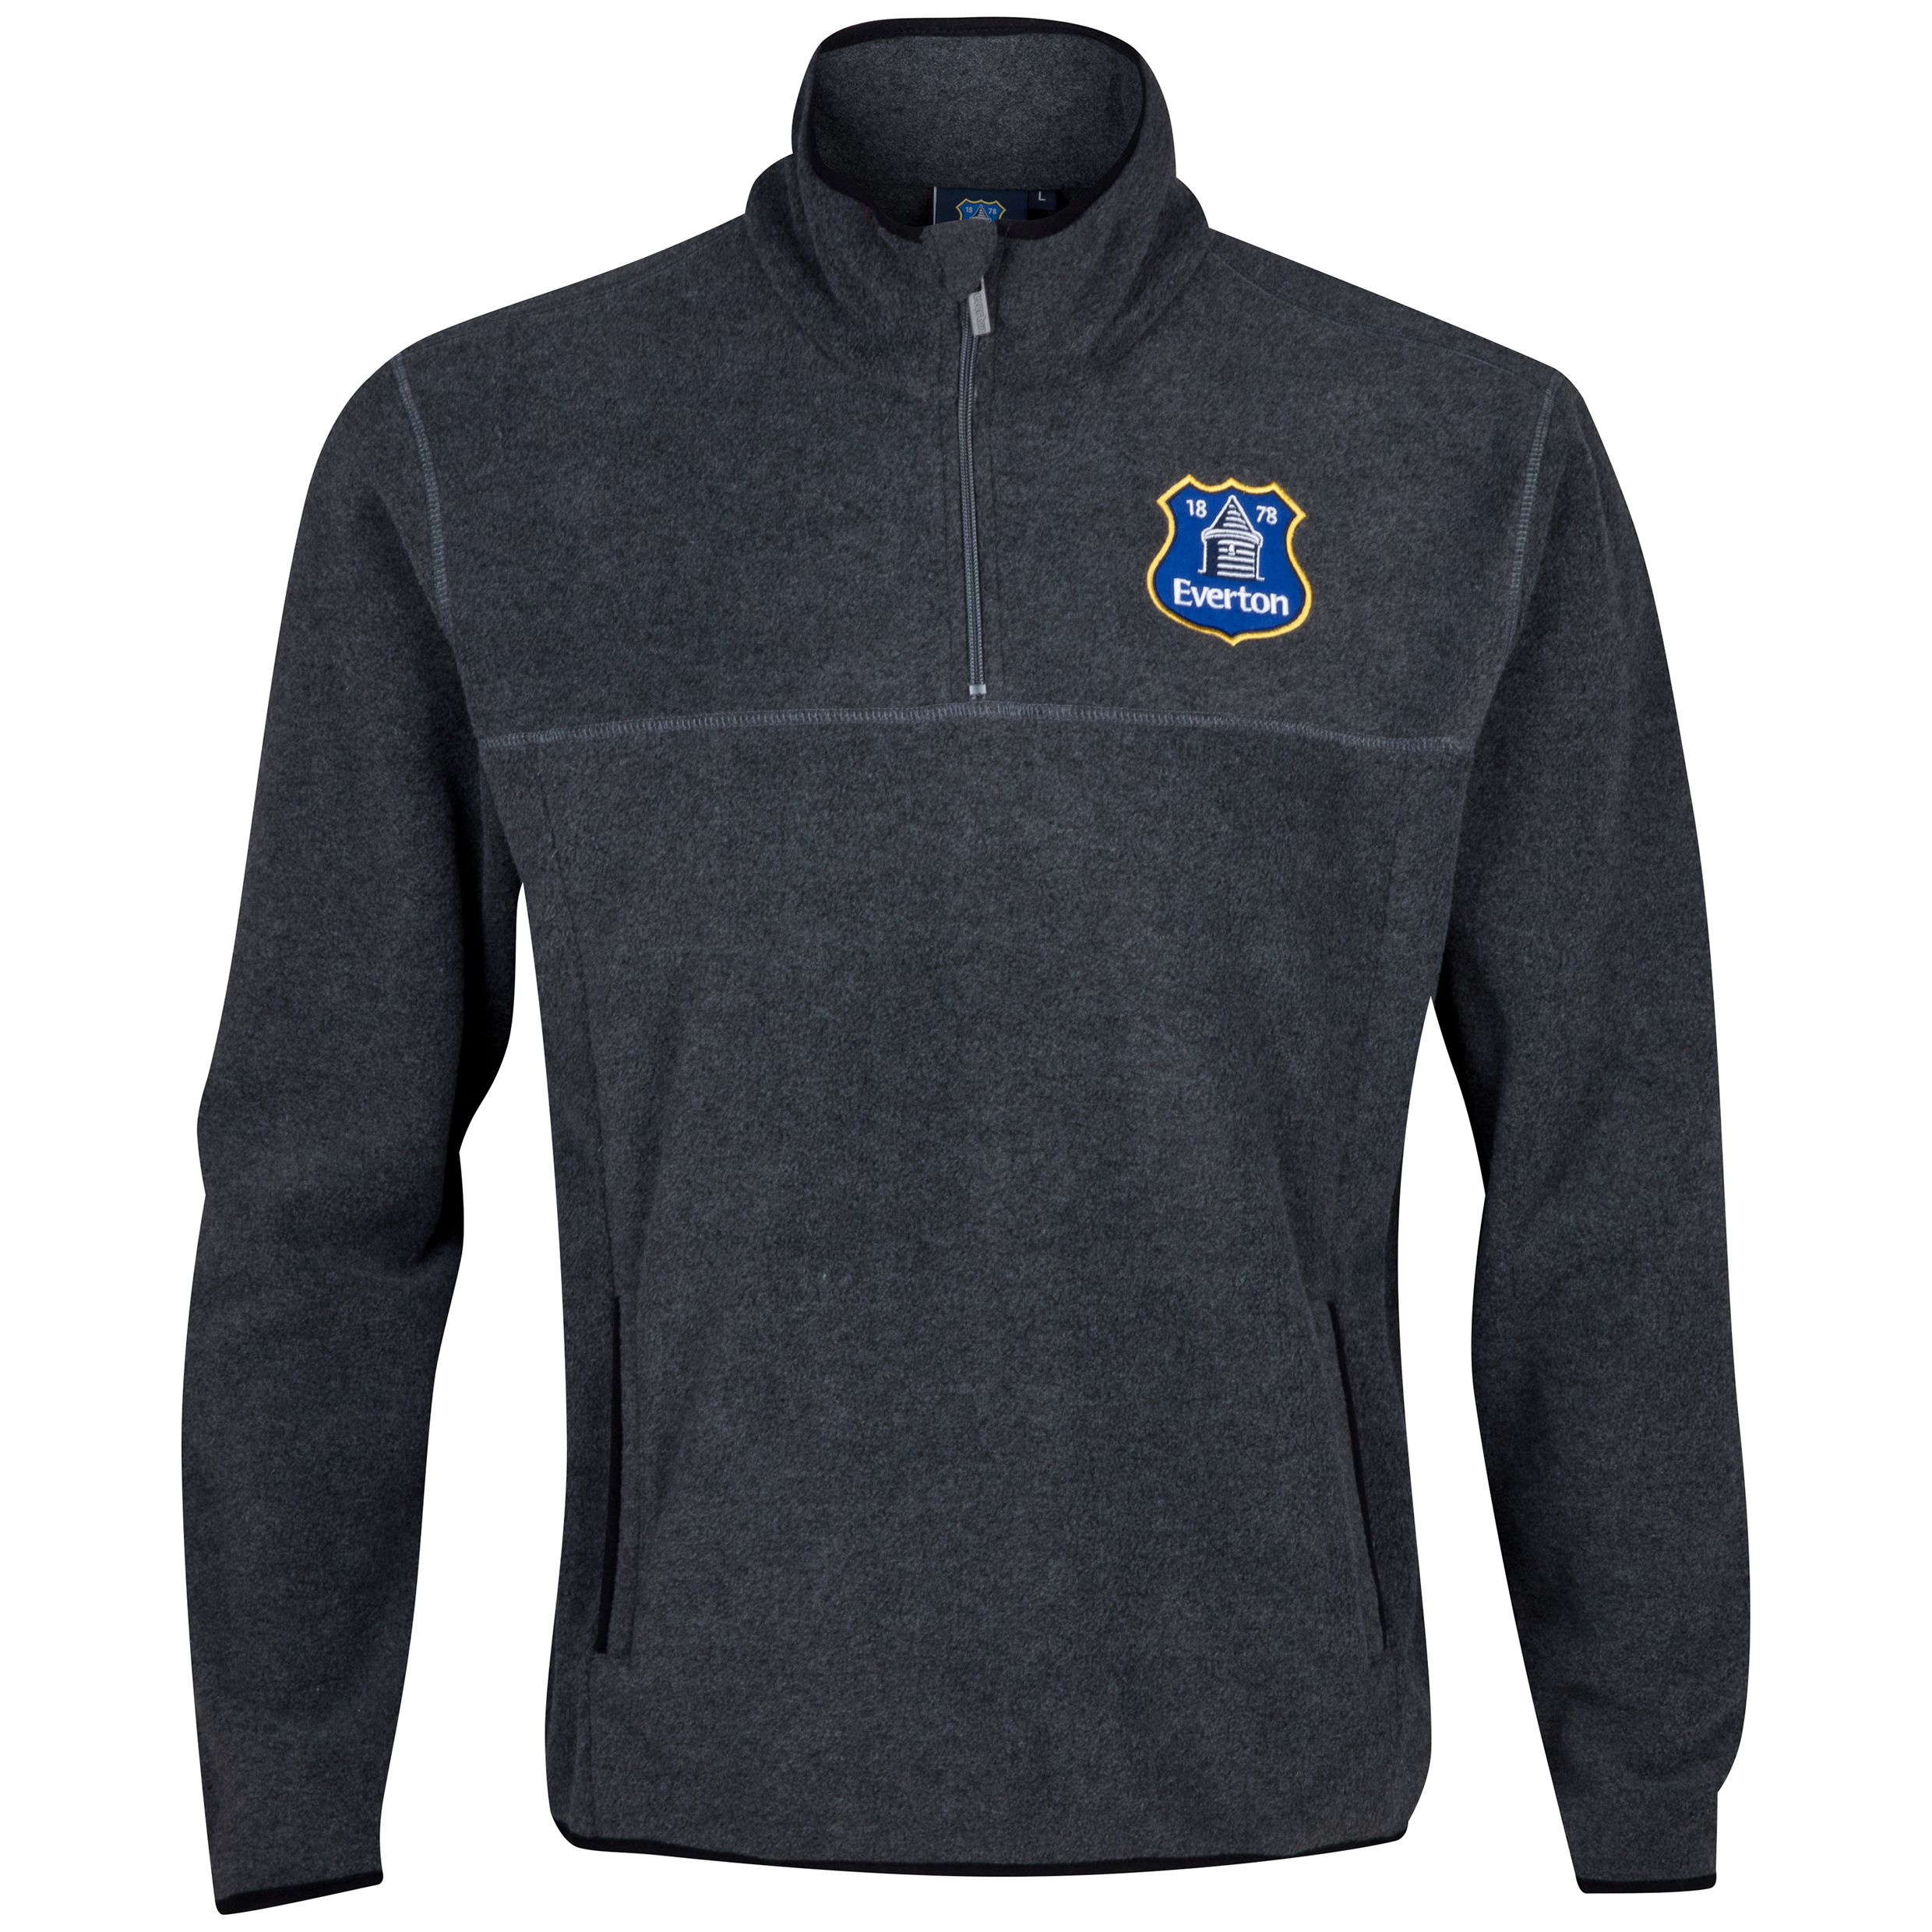 Everton Essentials Woods Fleece - Mens Charcoal